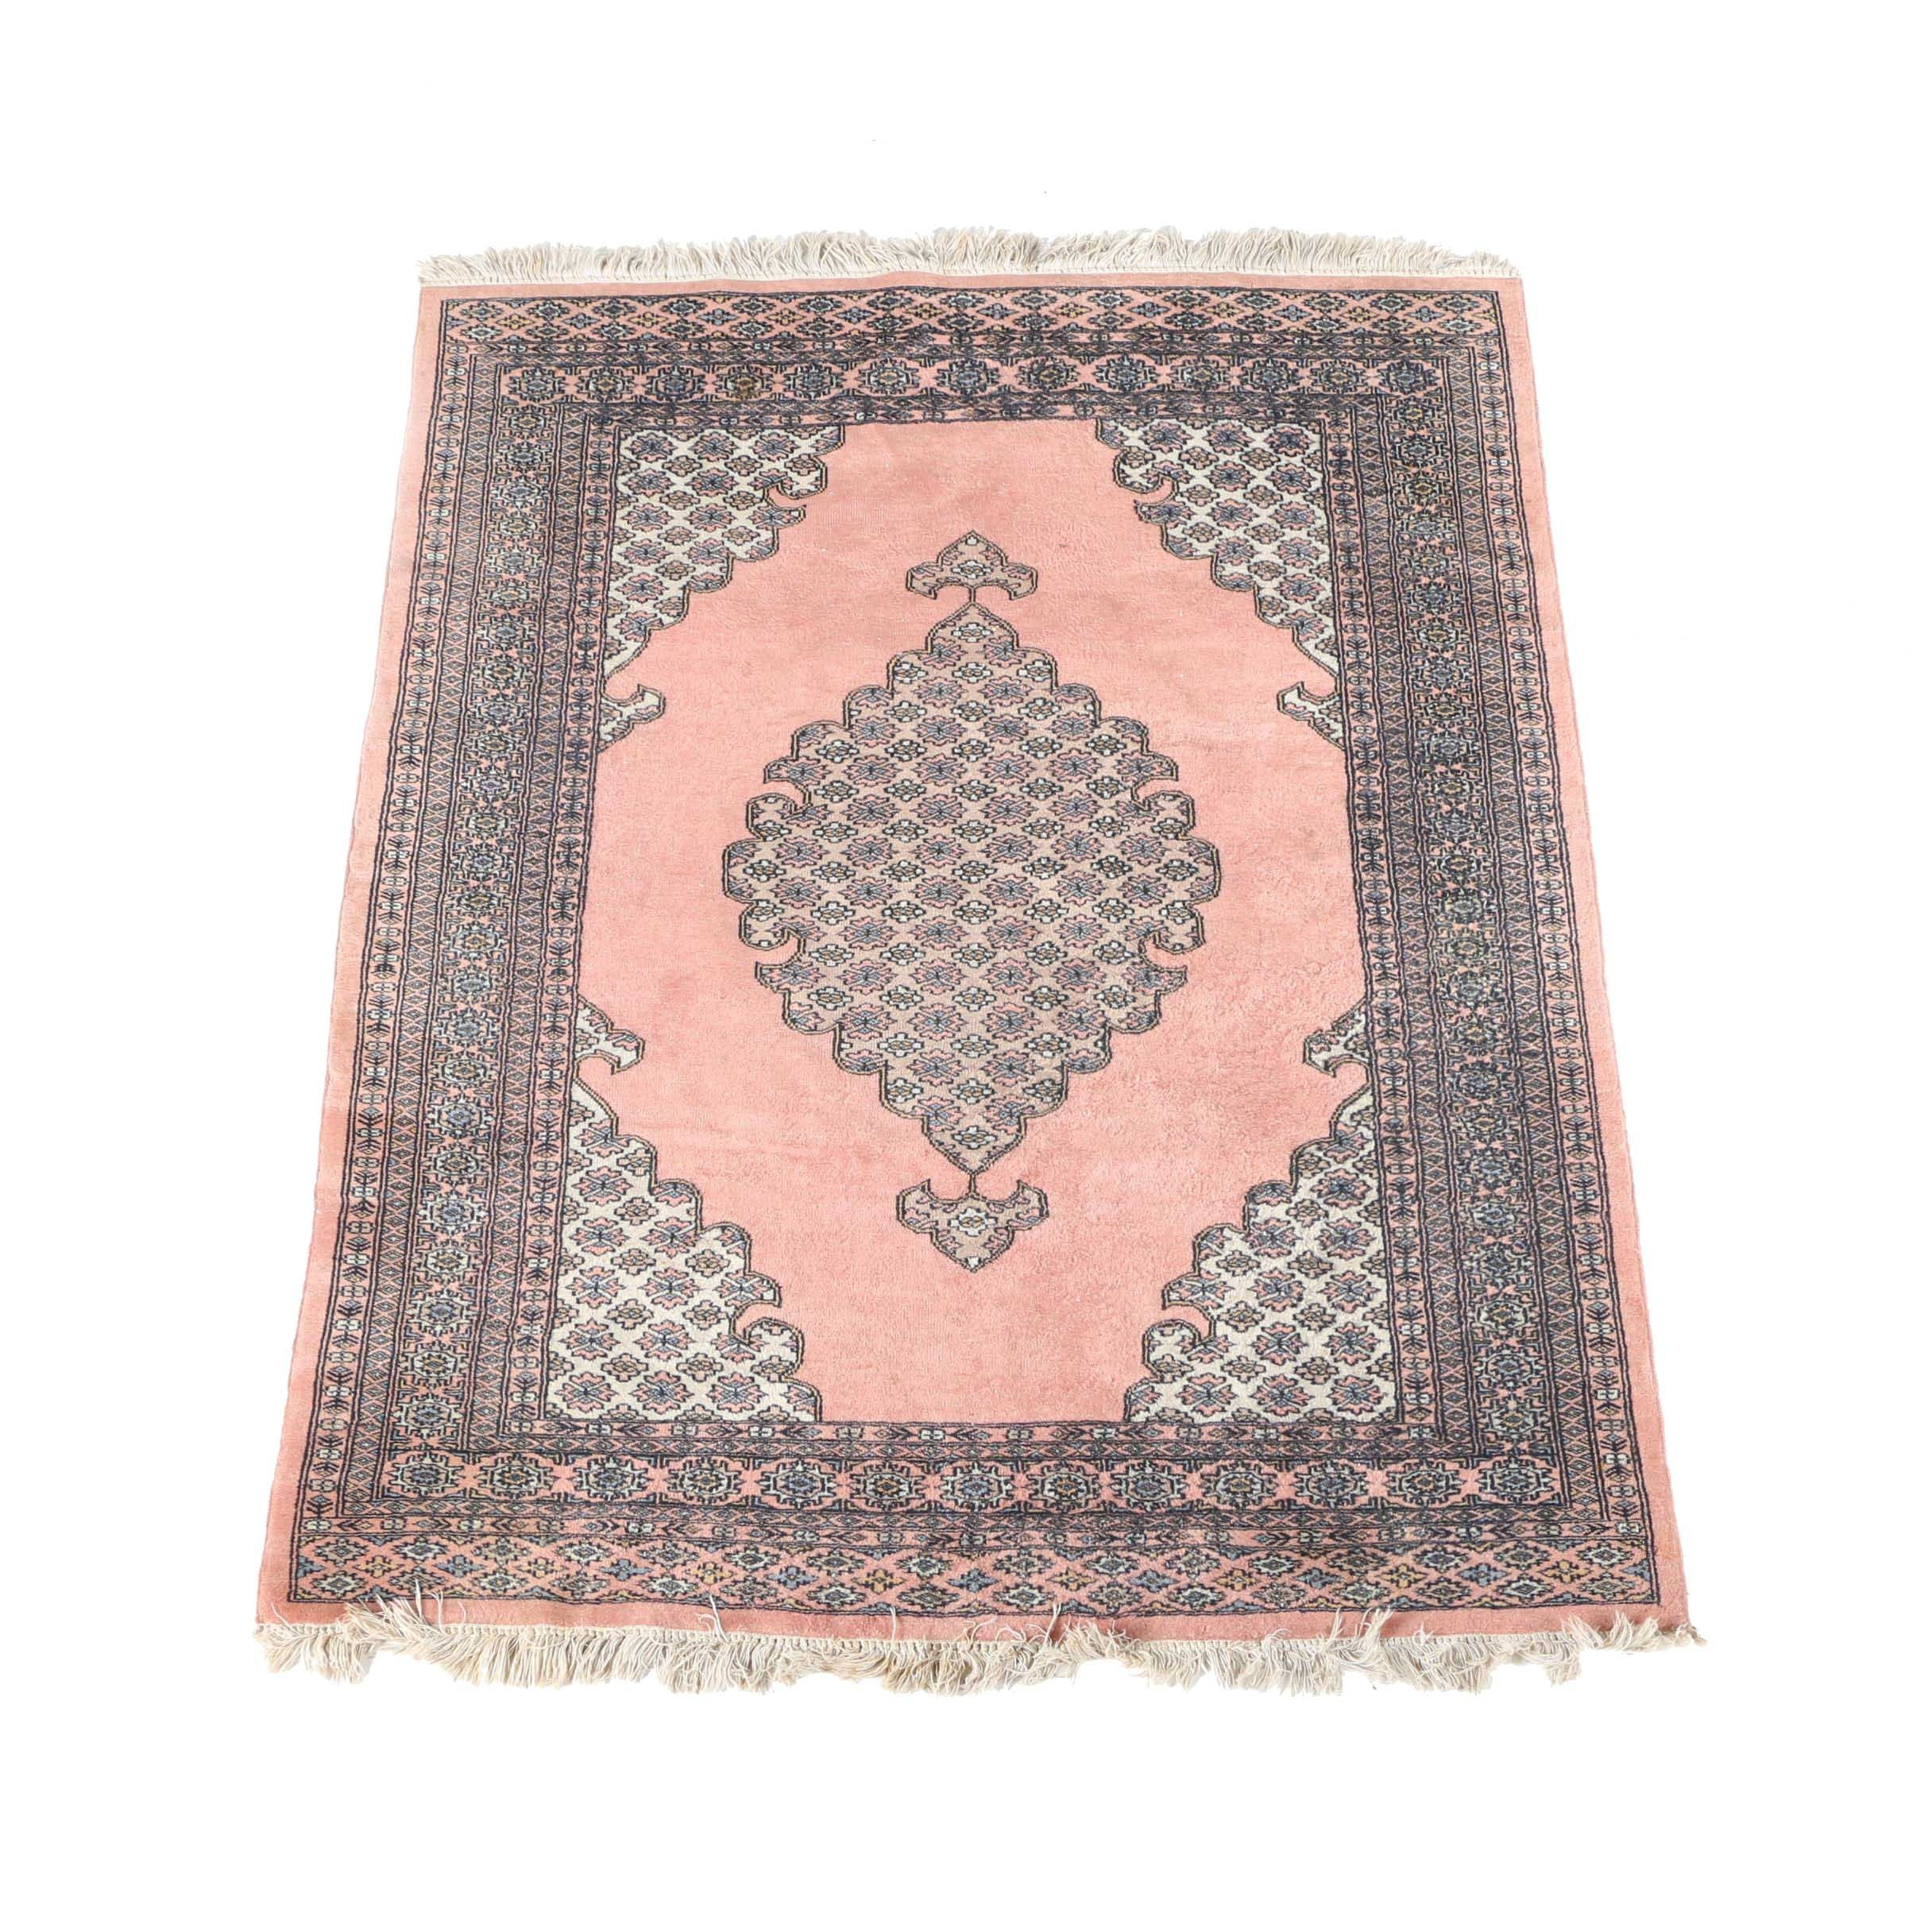 Hand-Knotted Pakistani Dusty Rose Area Rug